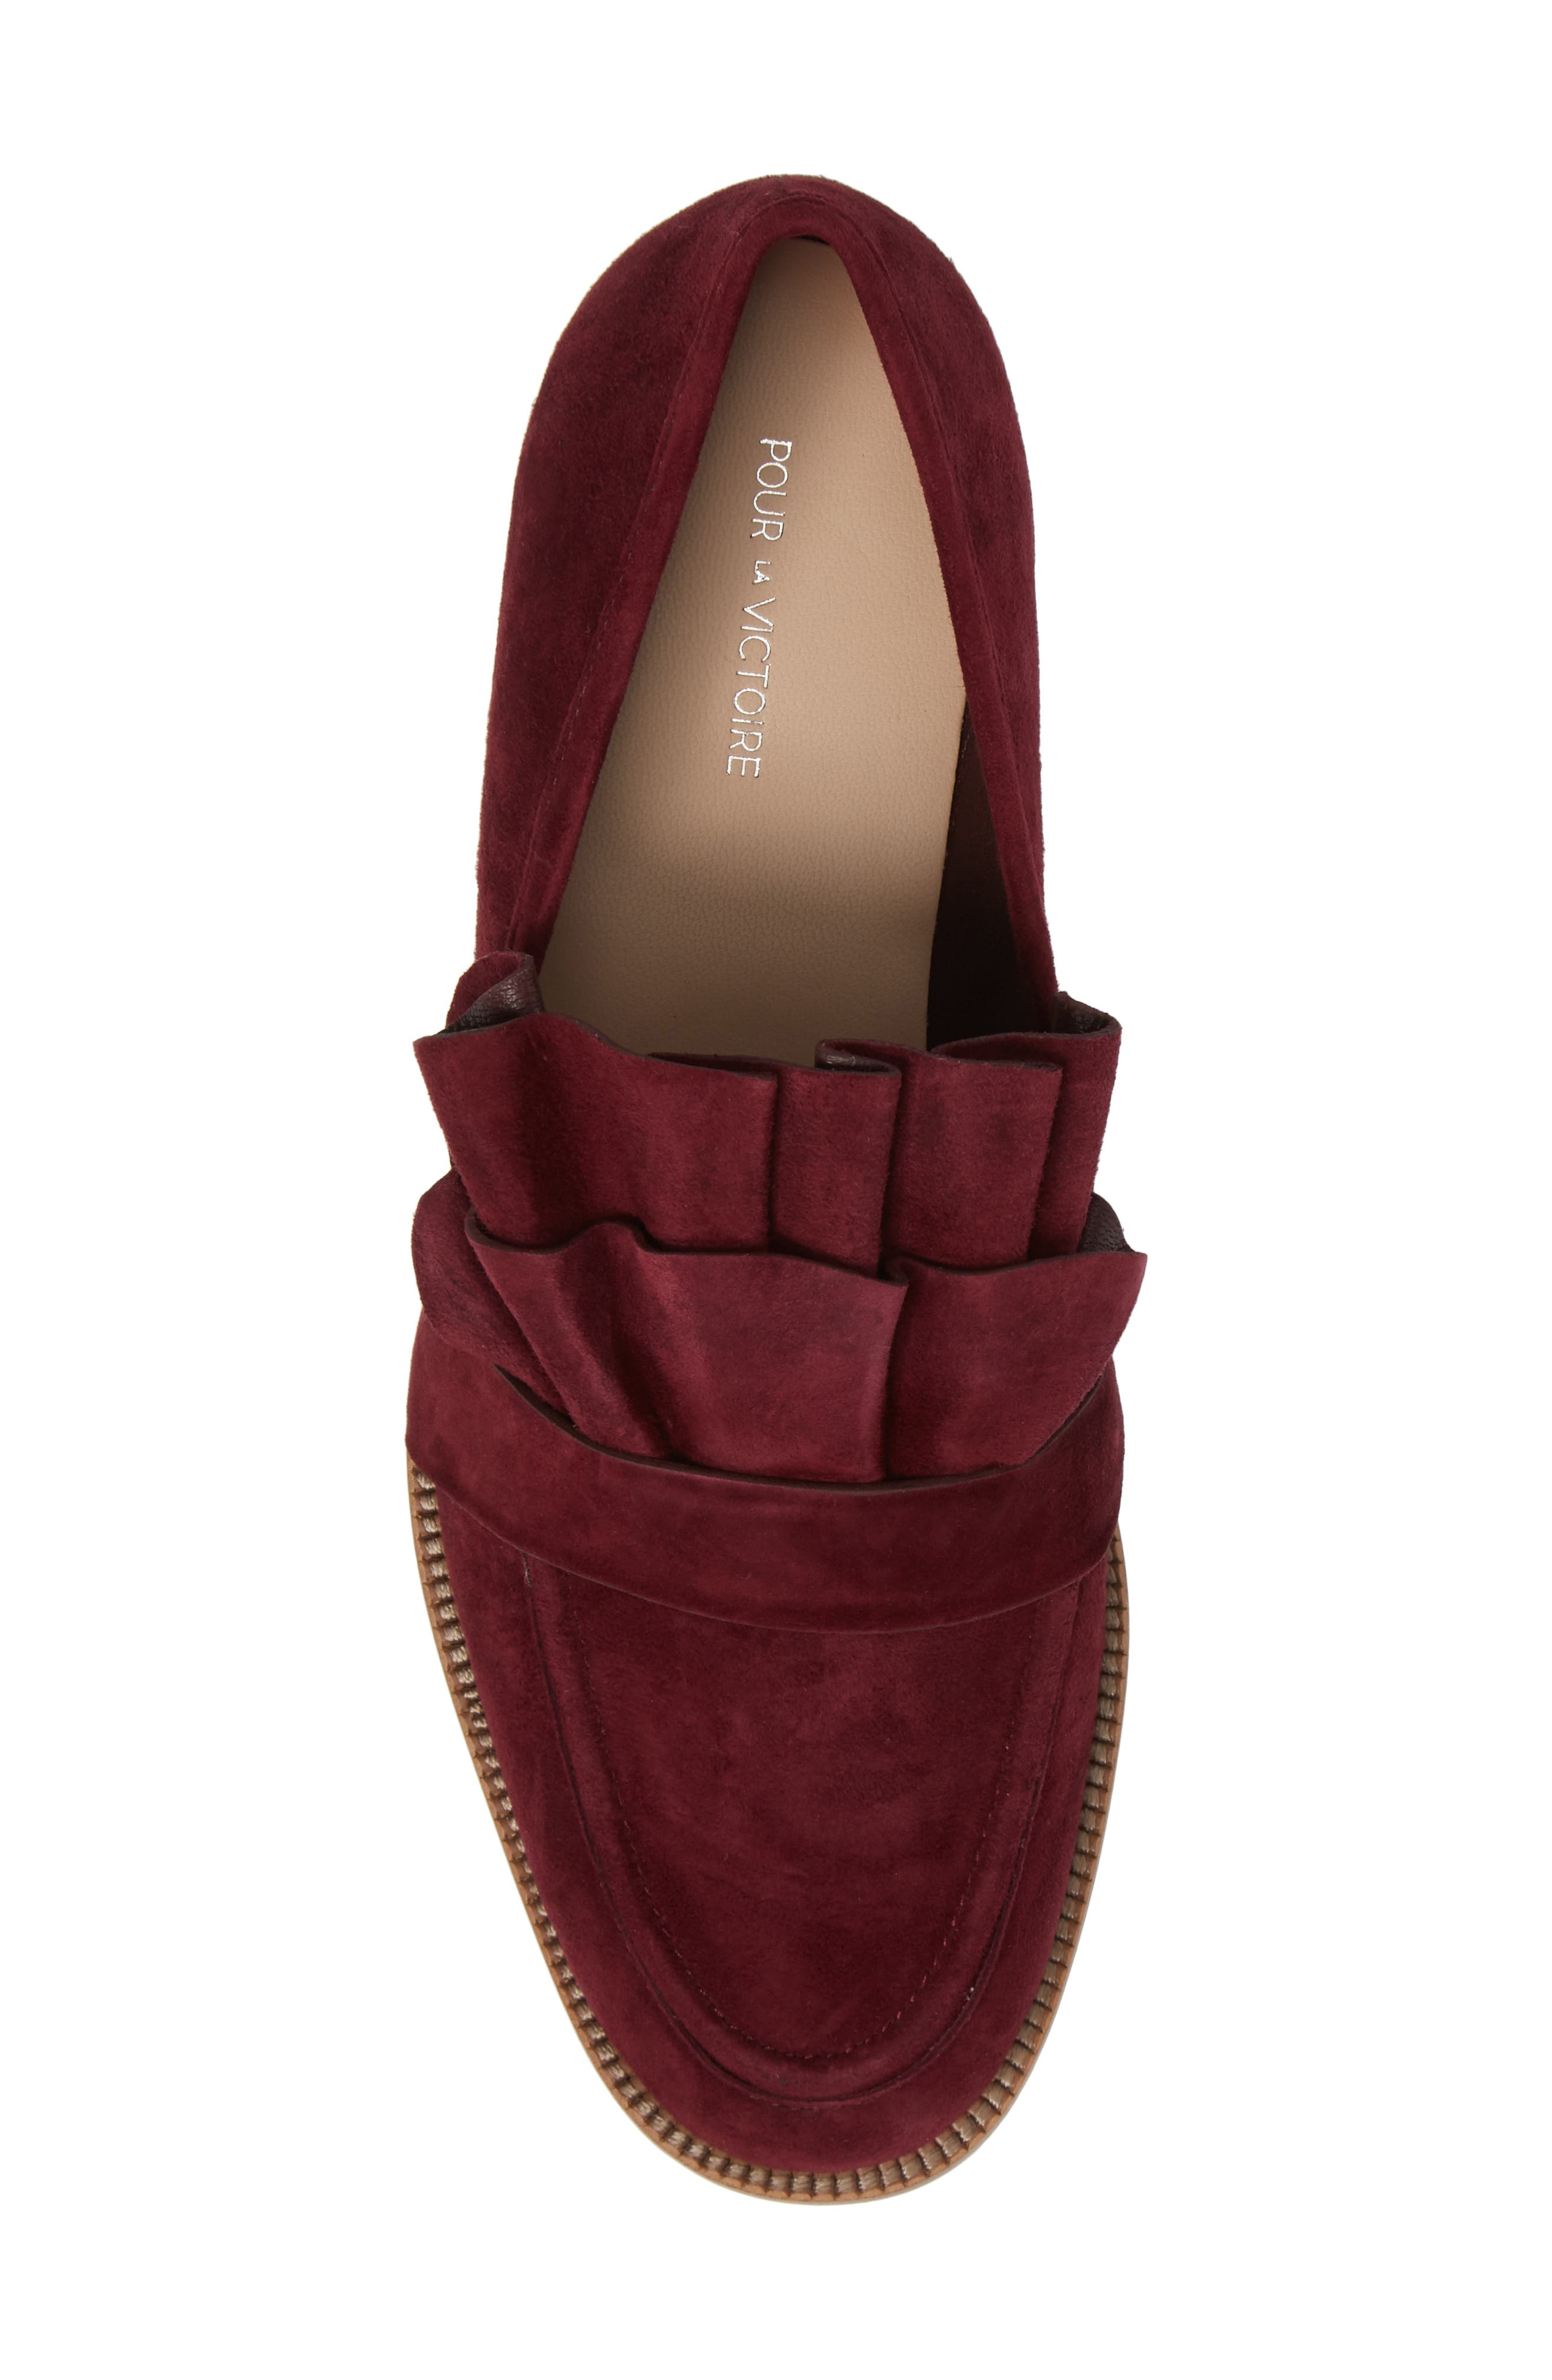 Tenley Ruffled Loafer,                             Alternate thumbnail 5, color,                             930